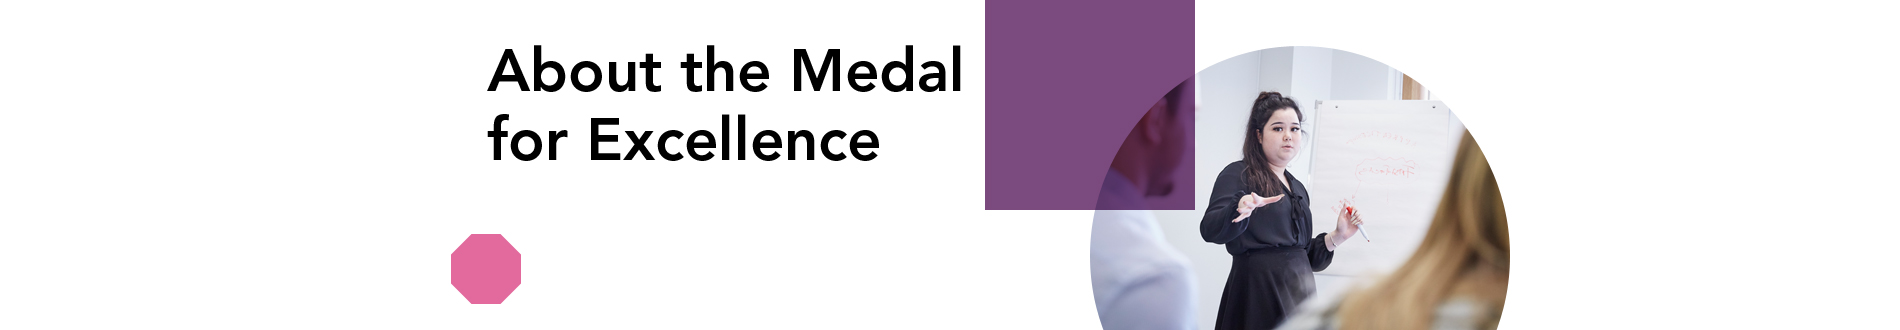 Z_about-the-medal-for-excellence_1900x330 jpg